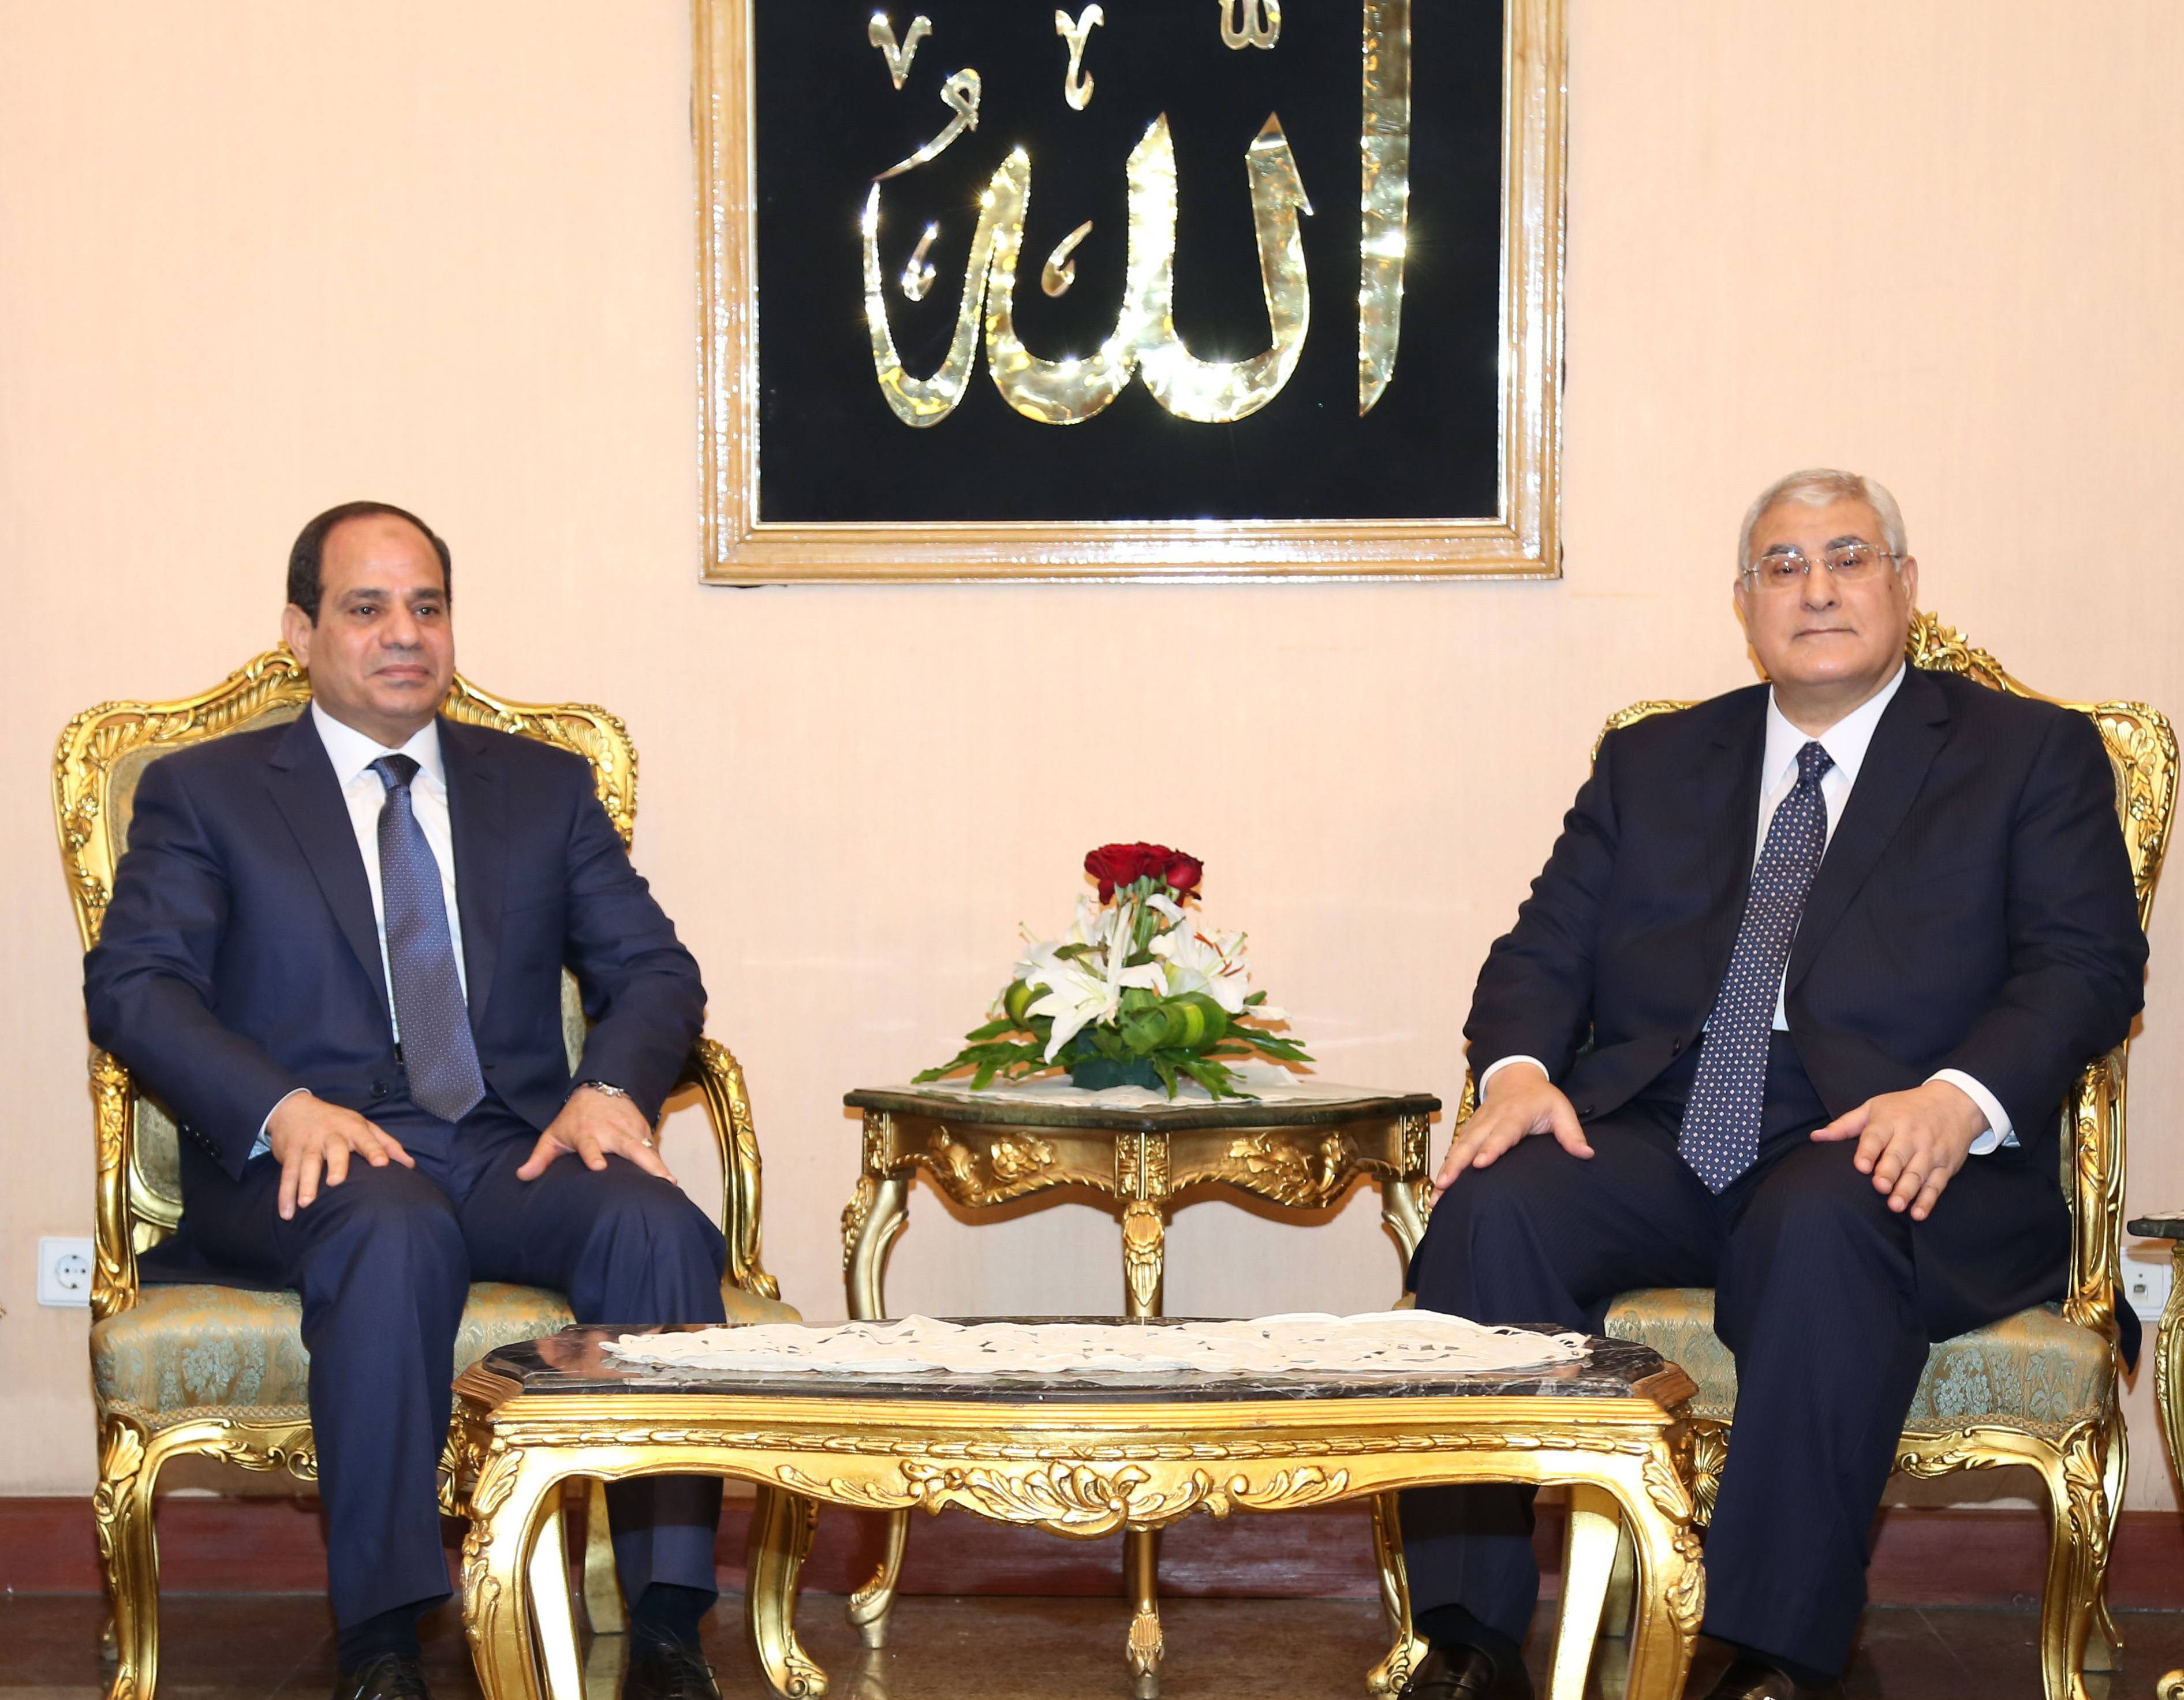 Egypt's former military chief Abdel-Fattah el-Sissi, left, and outgoing interim President Adly Mansour pose Sunday for a photo on el-Sissi's inauguration day in Cairo, Egypt. El-Sissi was sworn in on Sunday as president for a four-year term, taking the reins of power in a nation roiled since 2011 by deadly unrest and economic woes.